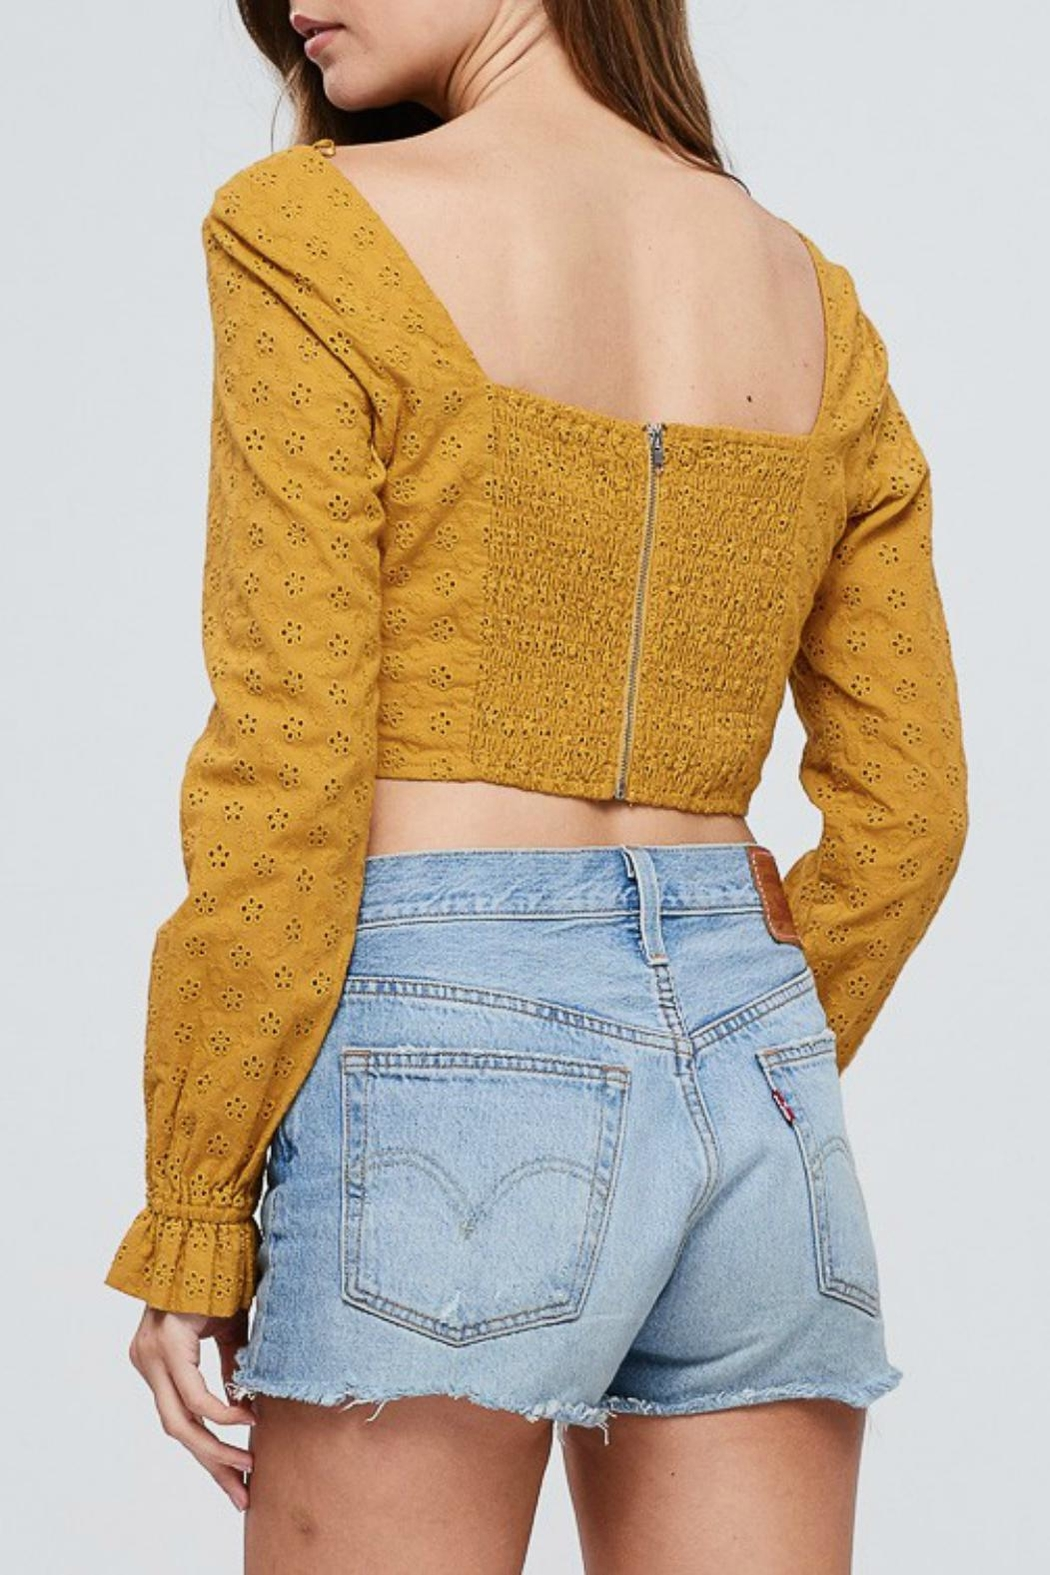 Pretty Little Things Eyelet Crop Top - Front Full Image